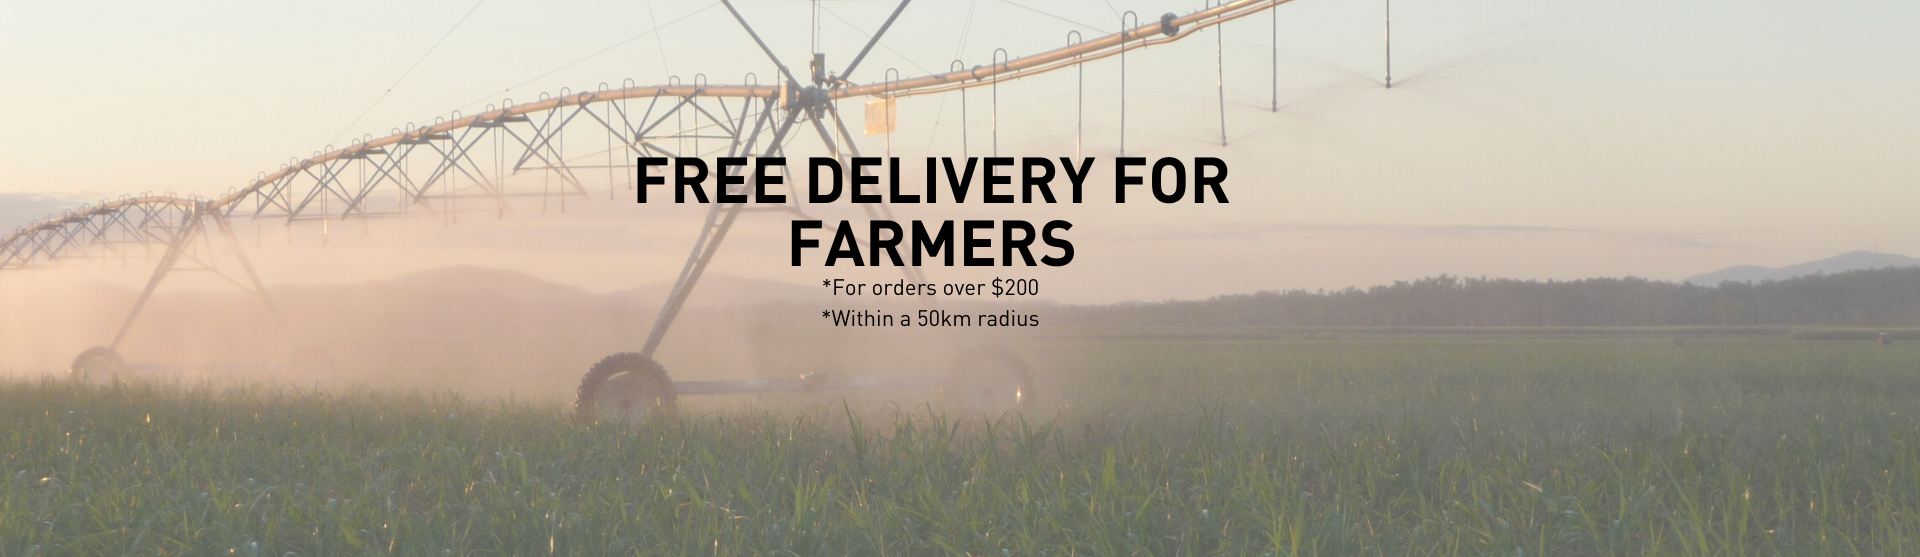 Free Delivery for Farmers